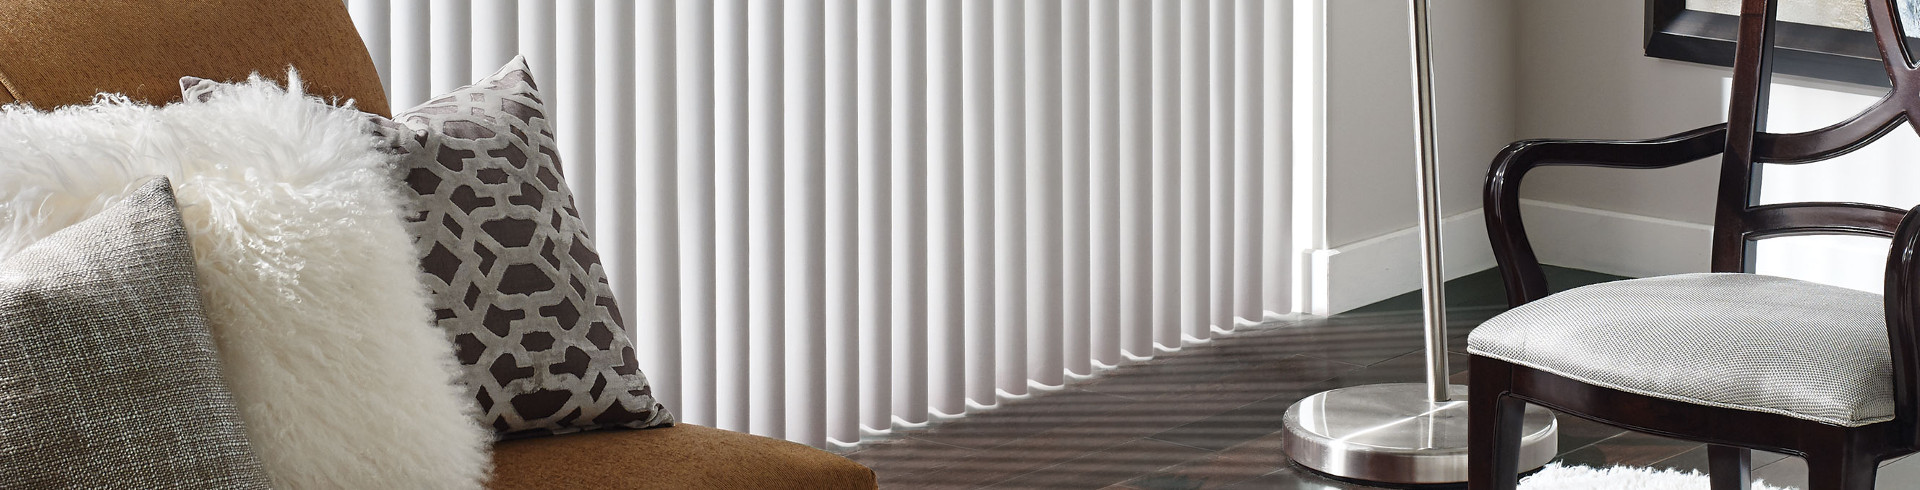 Vertical Blinds Long Island Sliding Glass Door Blinds